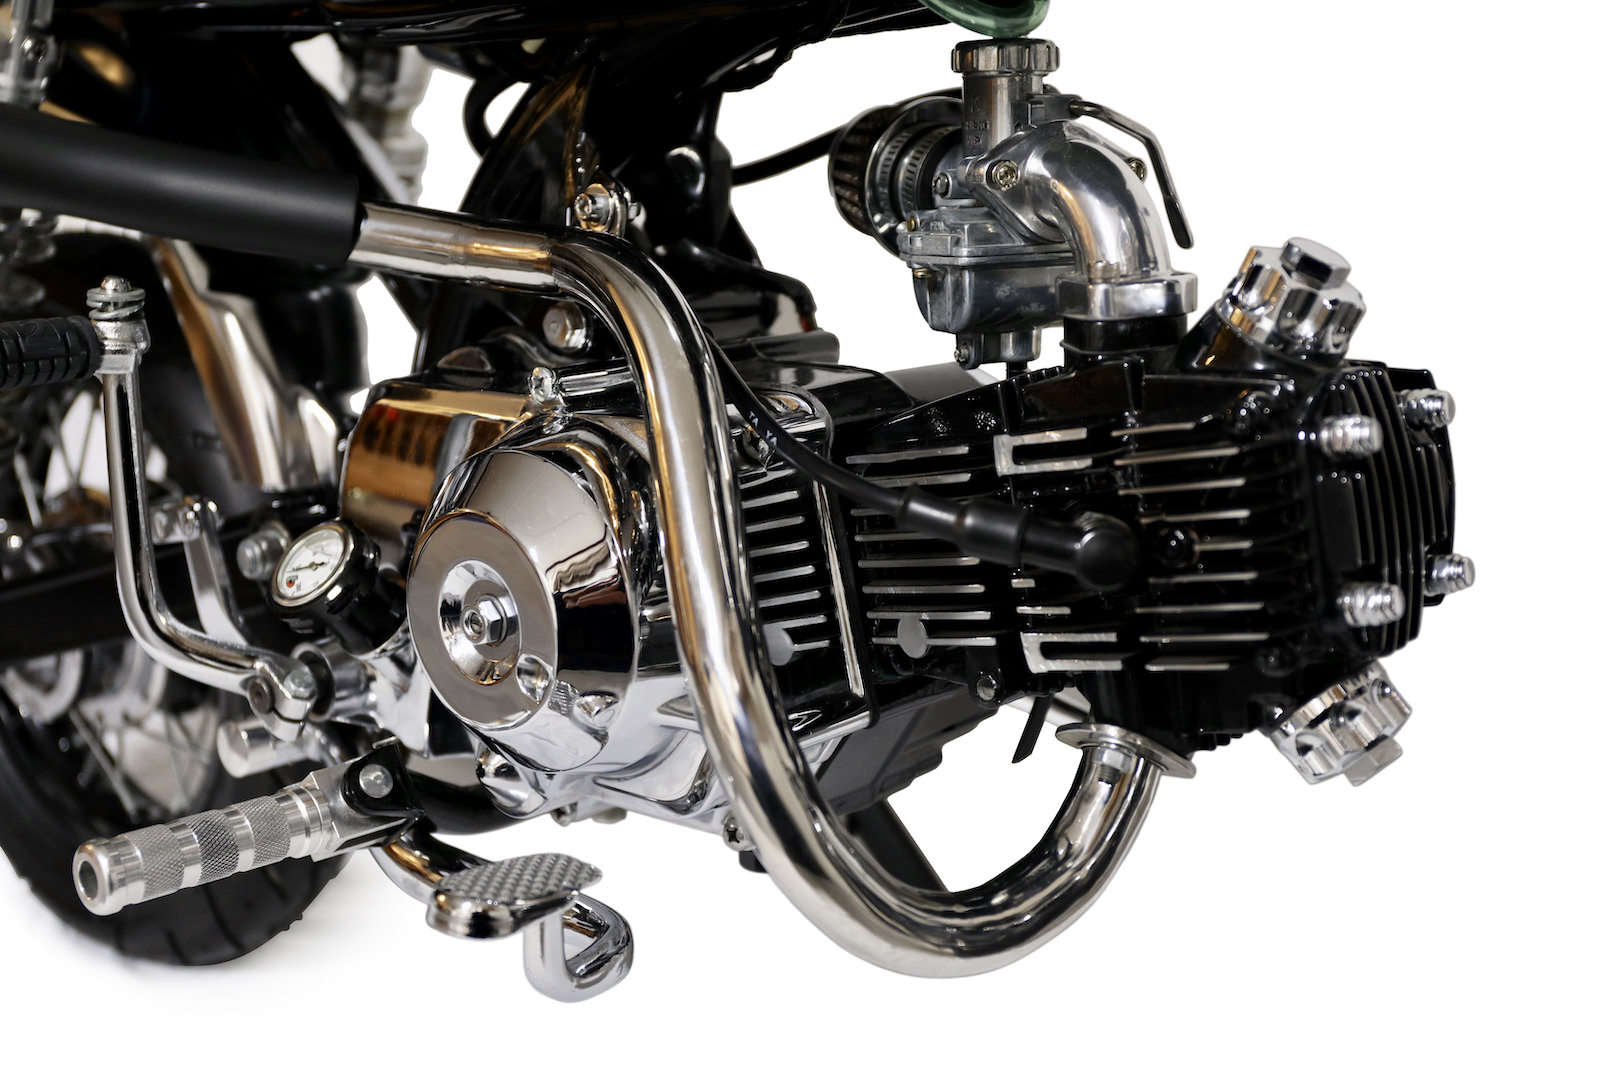 hight resolution of honda monkey bike cafe racer engine